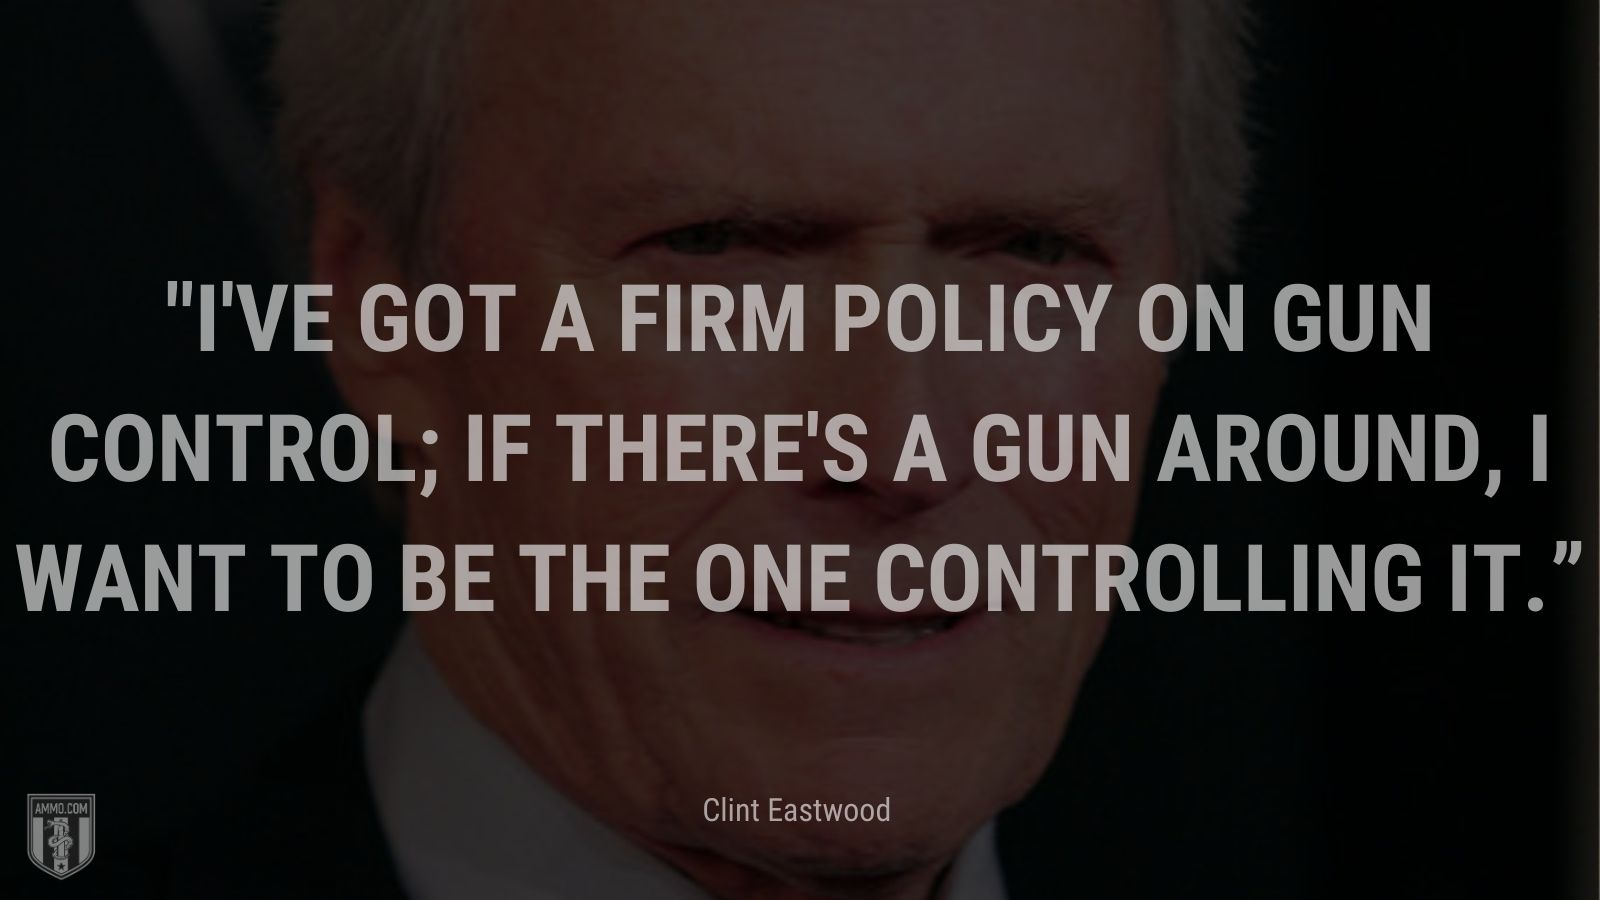 """""""I've got a firm policy on gun control; If there's a gun around, I want to be the one controlling it."""" - Clint Eastwood"""